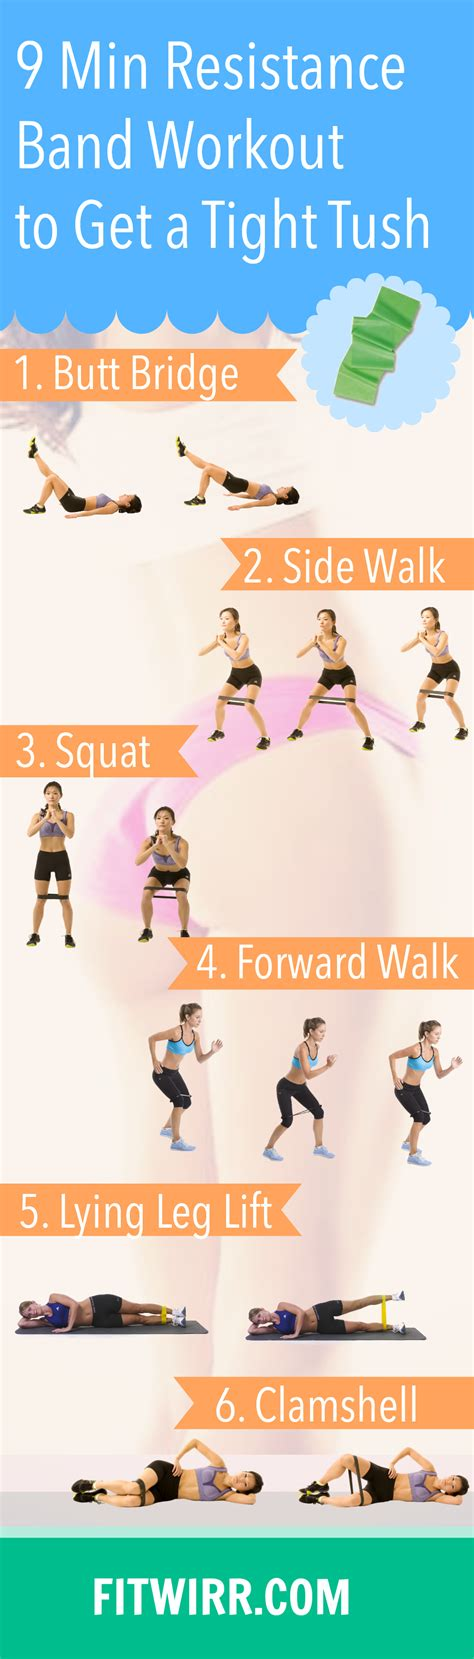 resistance band workouts search results for printable resistance band exercises calendar 2015